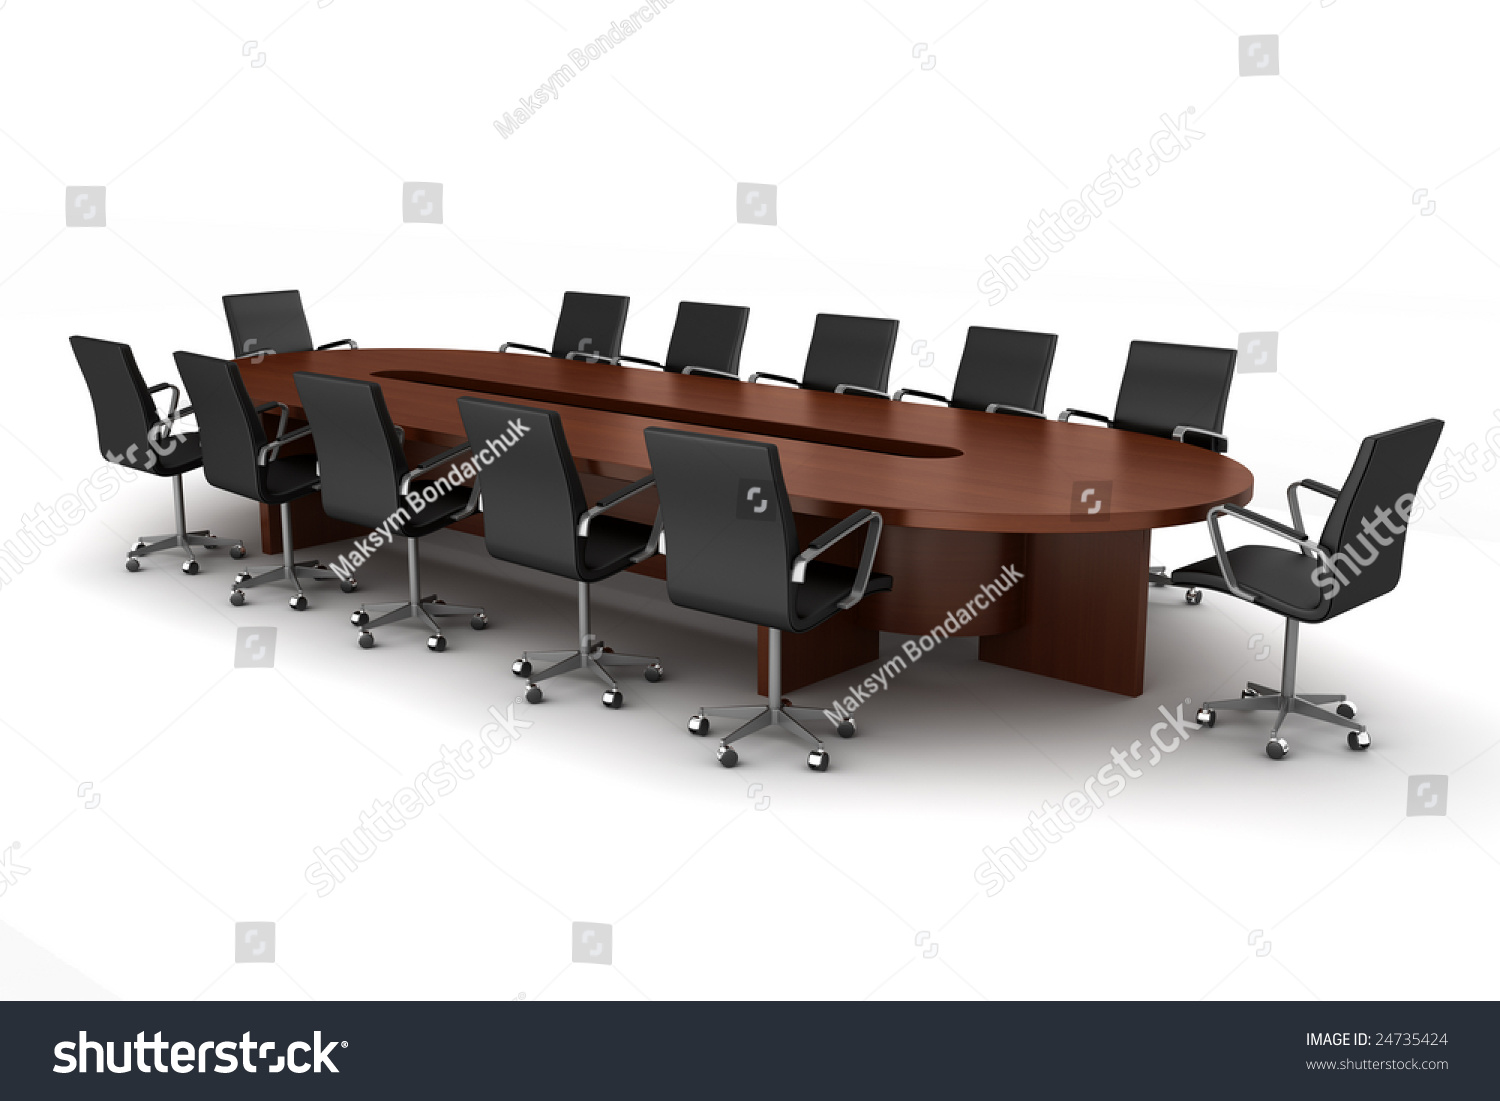 Conference Round Table And Black Office Chairs In Meeting Room - Black conference room table